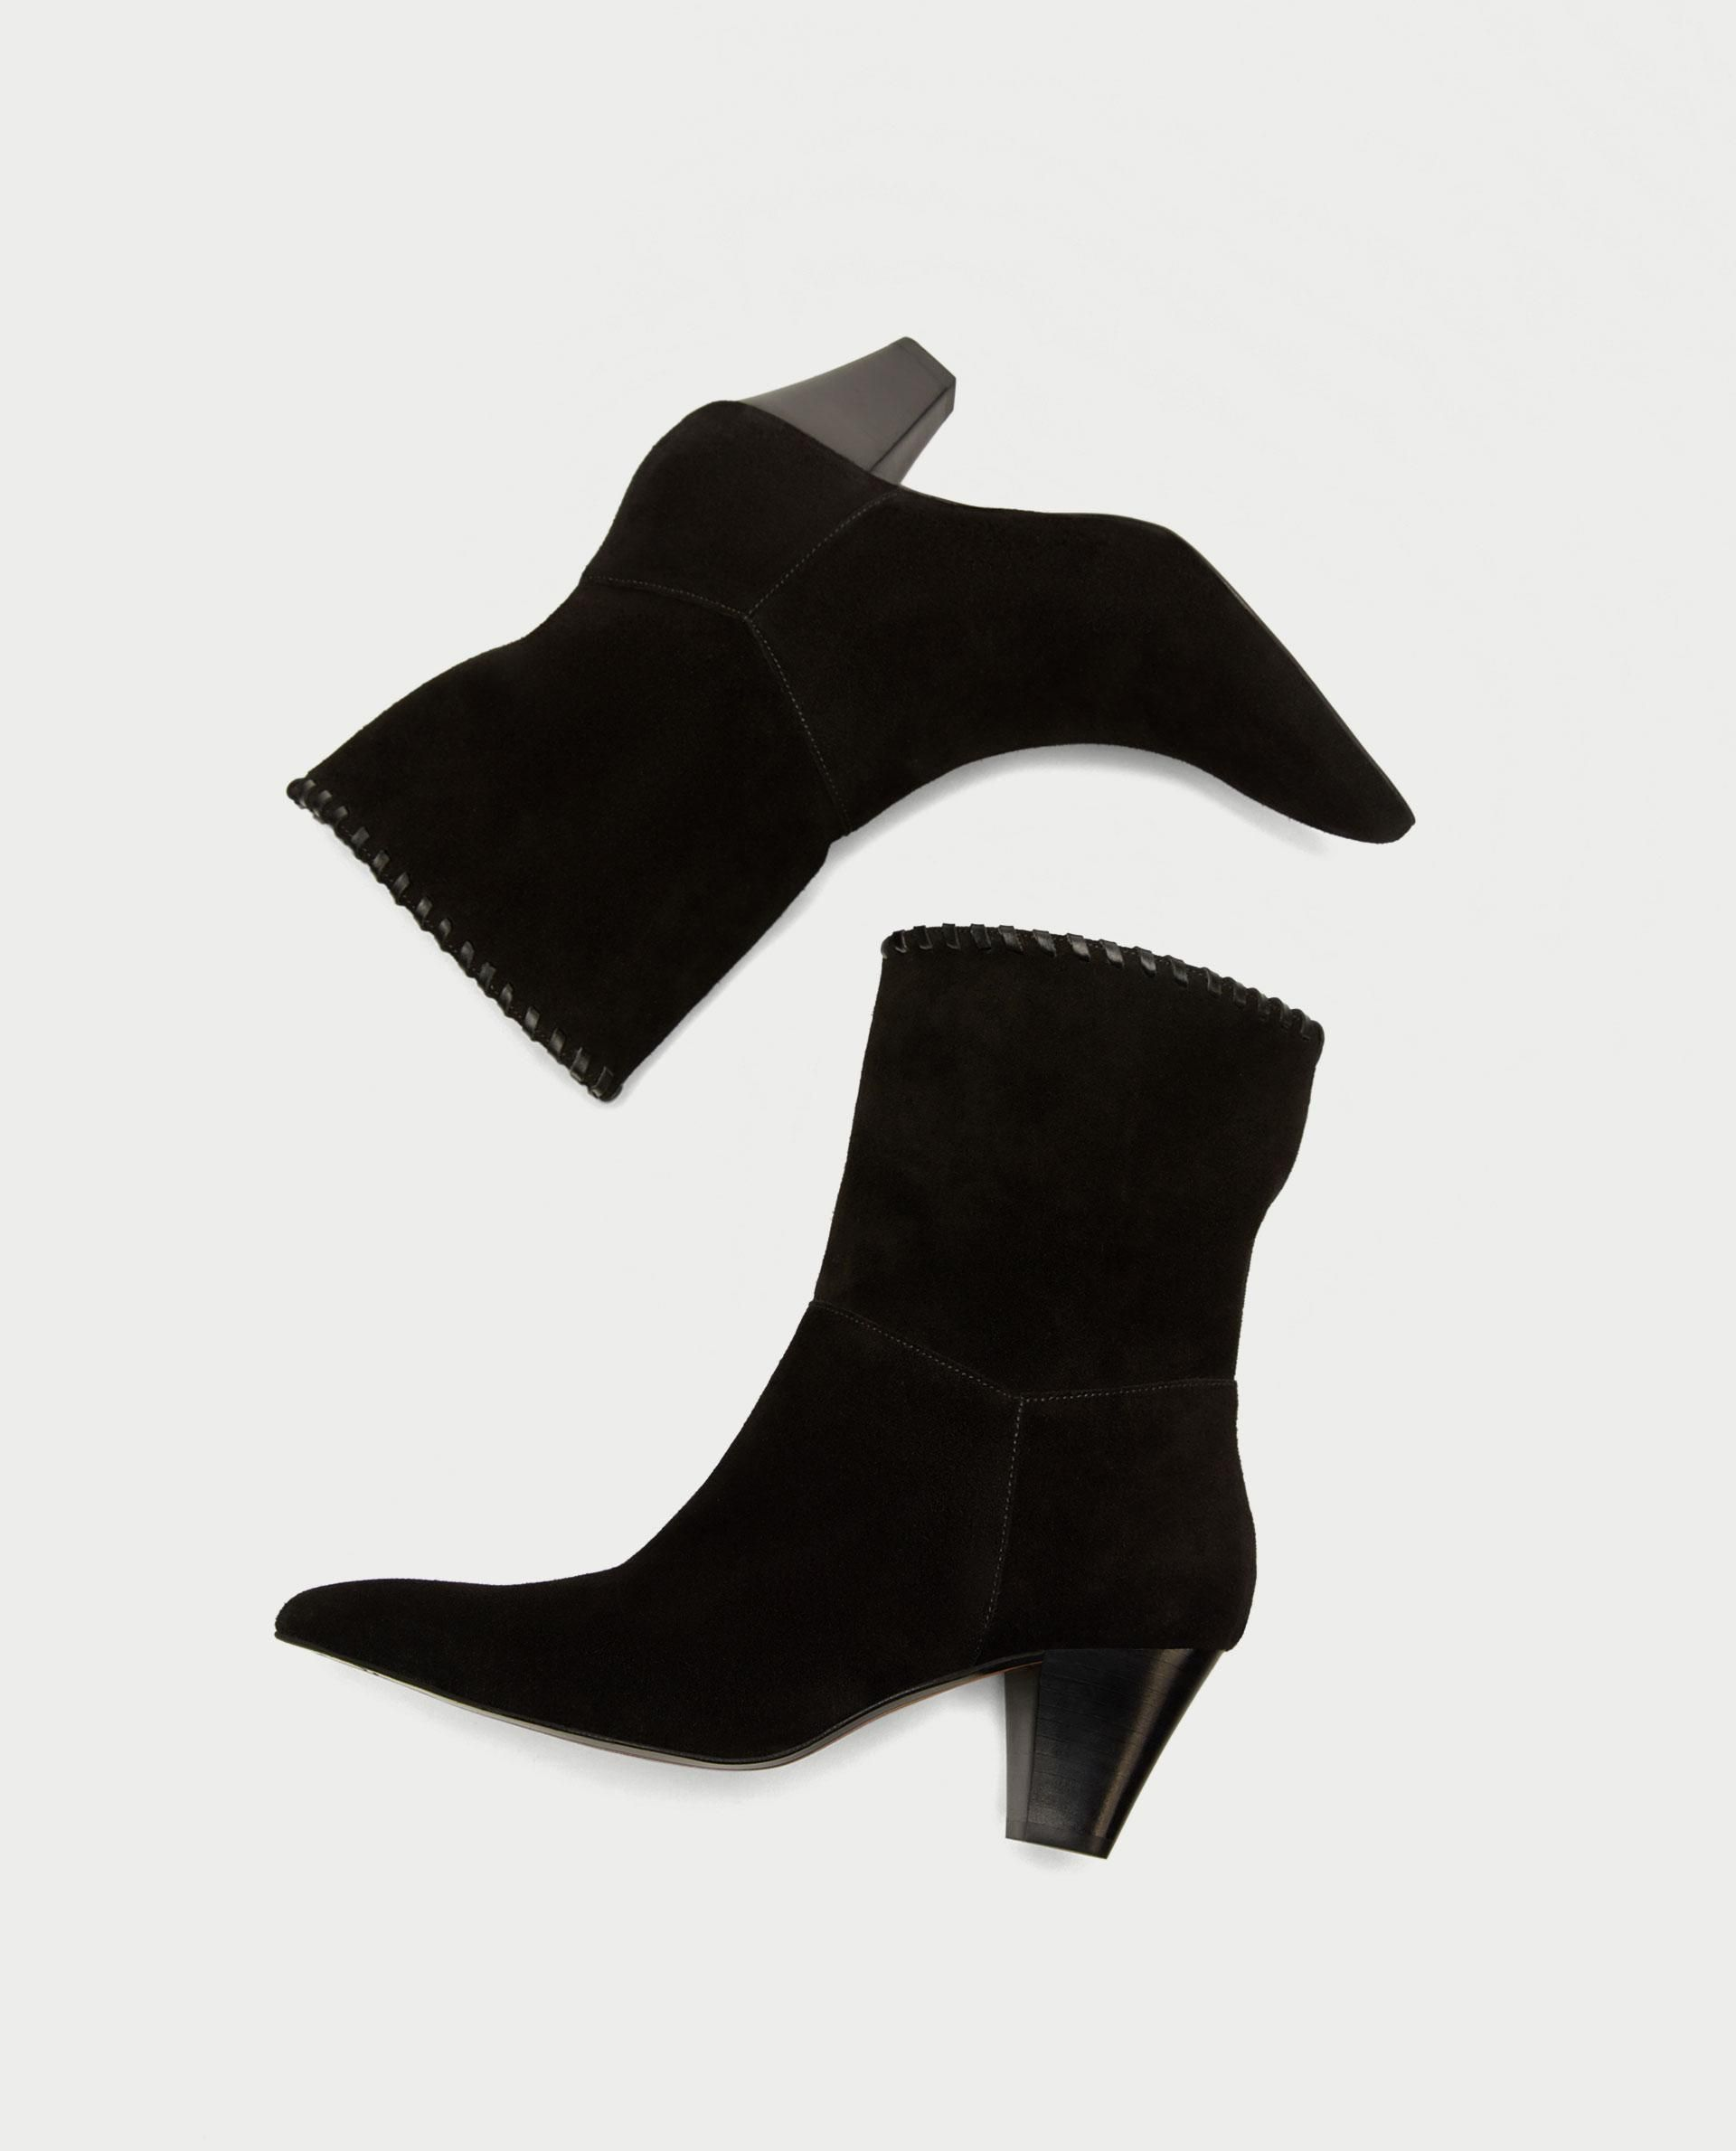 4f11a9886ec4 Leather High Heel Ankle Boots    79.90 USD    Zara    Black leather ...